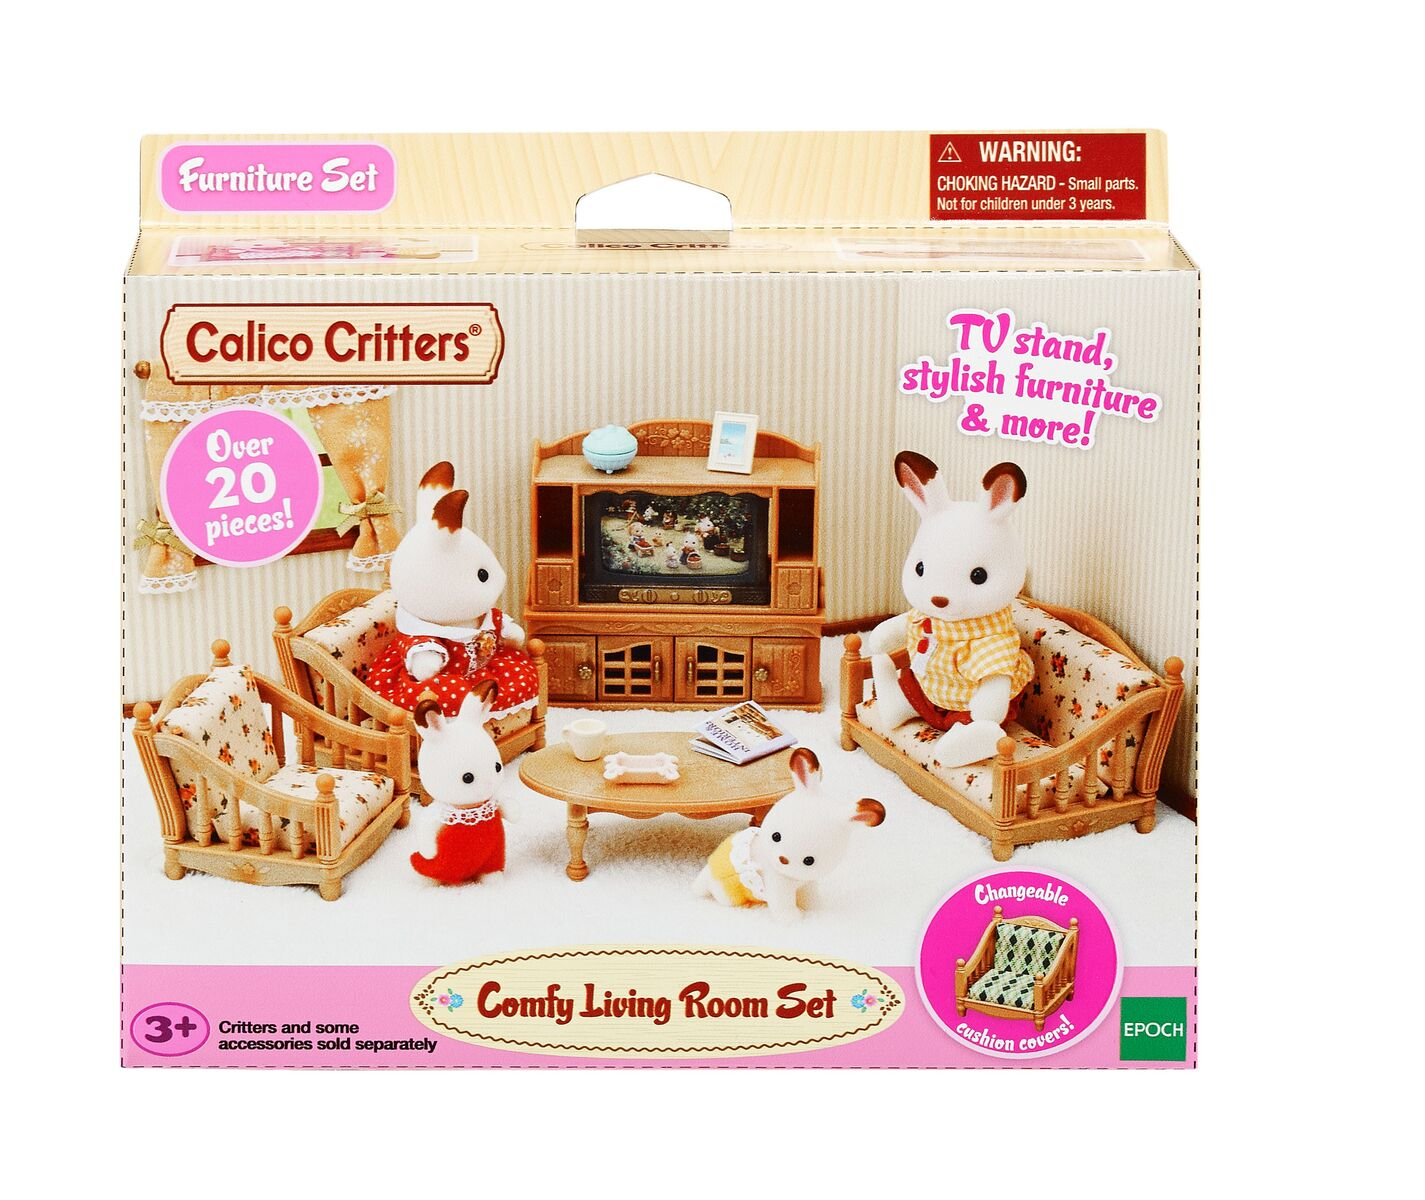 calico critters comfy living room set, furniture accessories